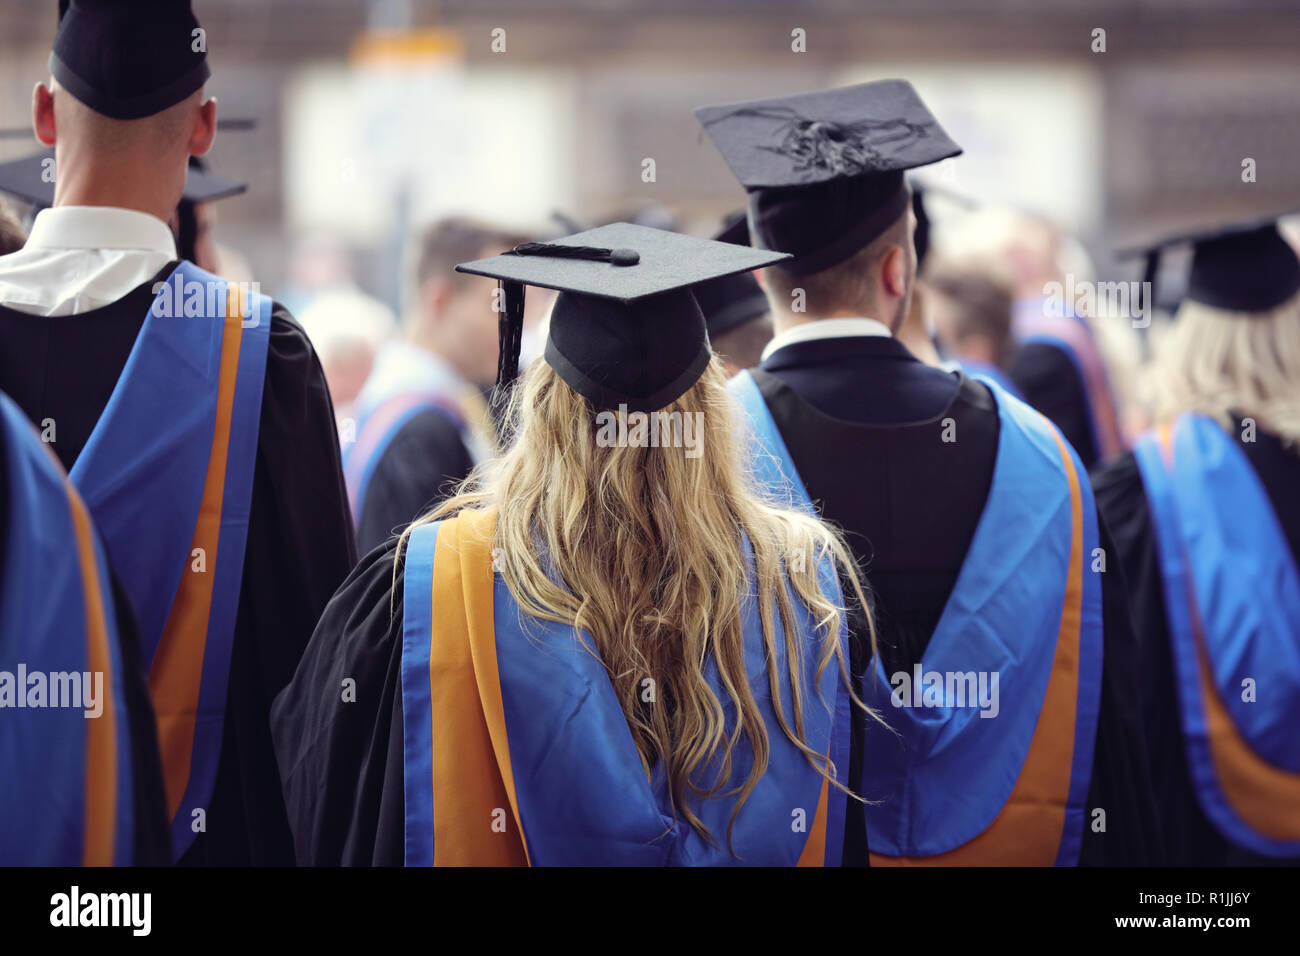 Graduates at university graduation  ceremony wearing mortarboard and gown - Stock Image